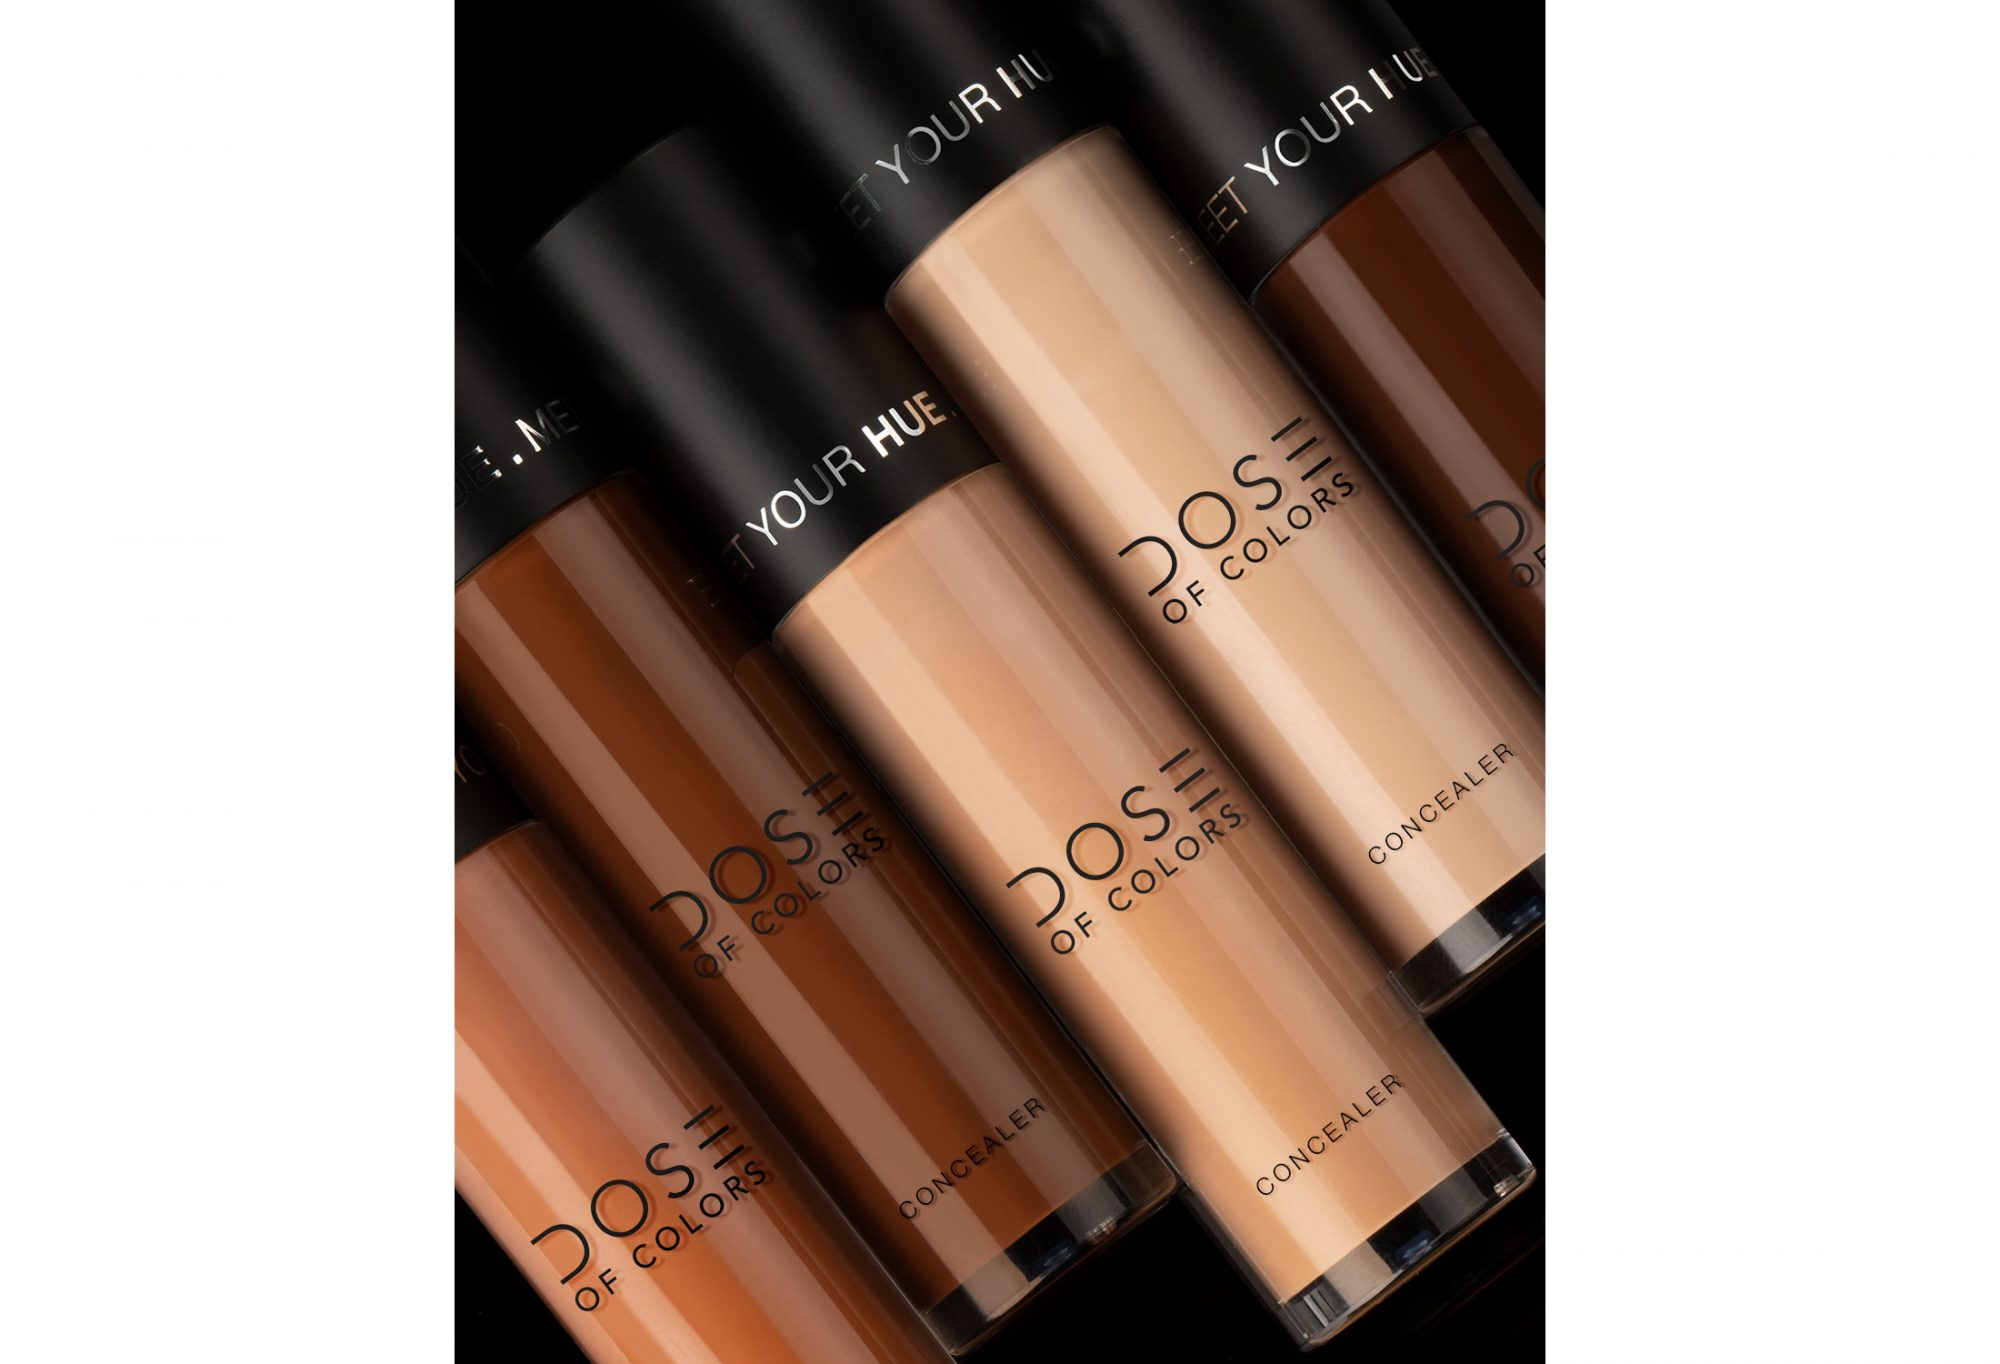 DOSE of COLORS Concealer Launch